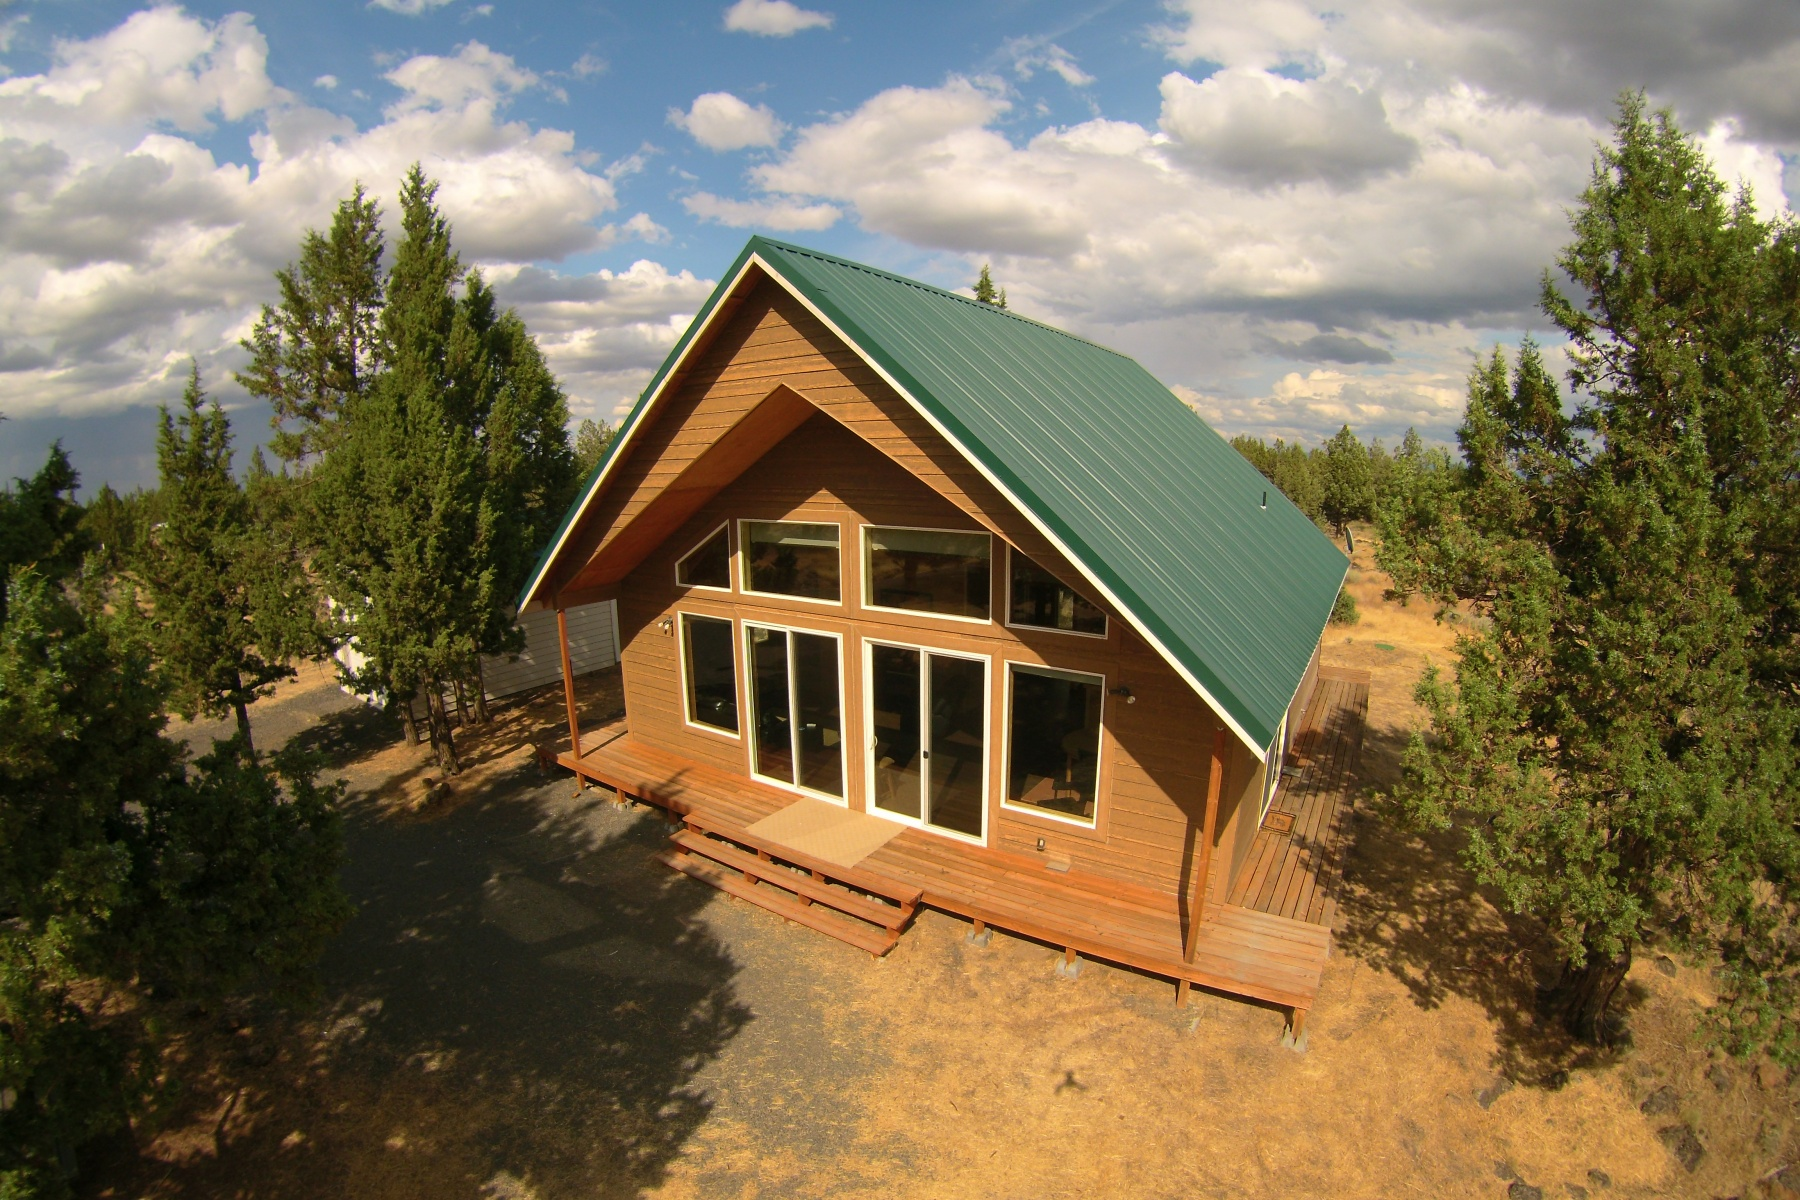 Maison unifamiliale pour l Vente à Cabin, Move-in Ready on Aristrip 13915 SW Airstrip Culver, Oregon 97734 États-Unis